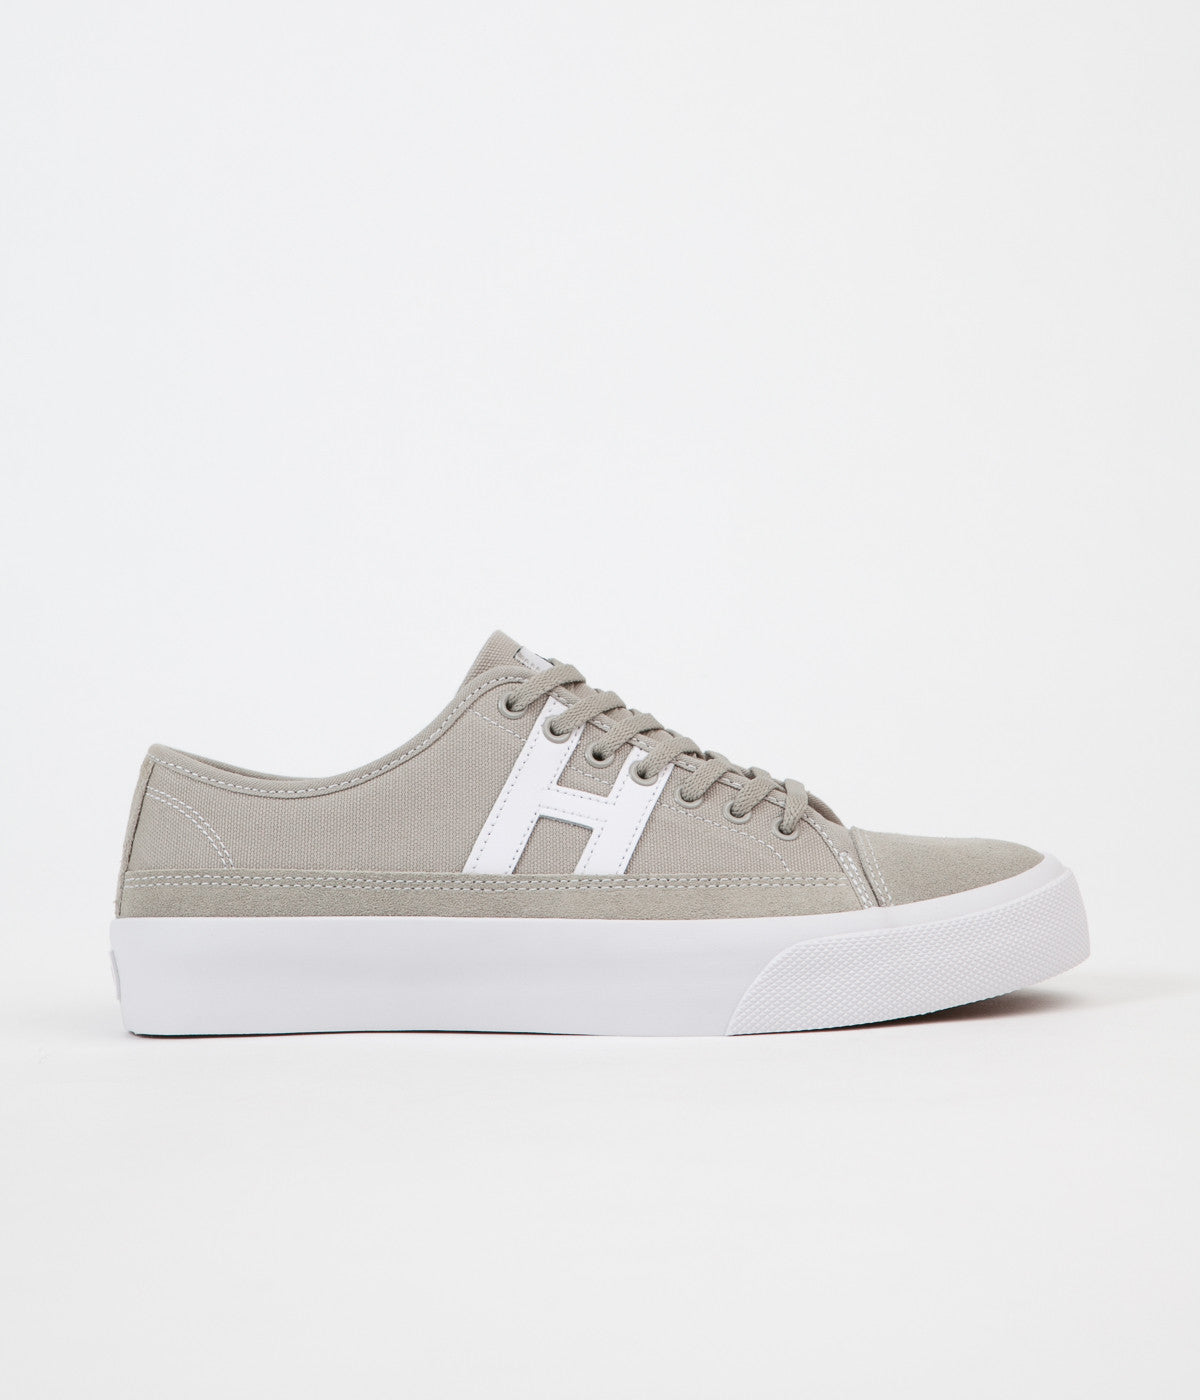 HUF Hupper 2 Lo Shoes - Aluminium